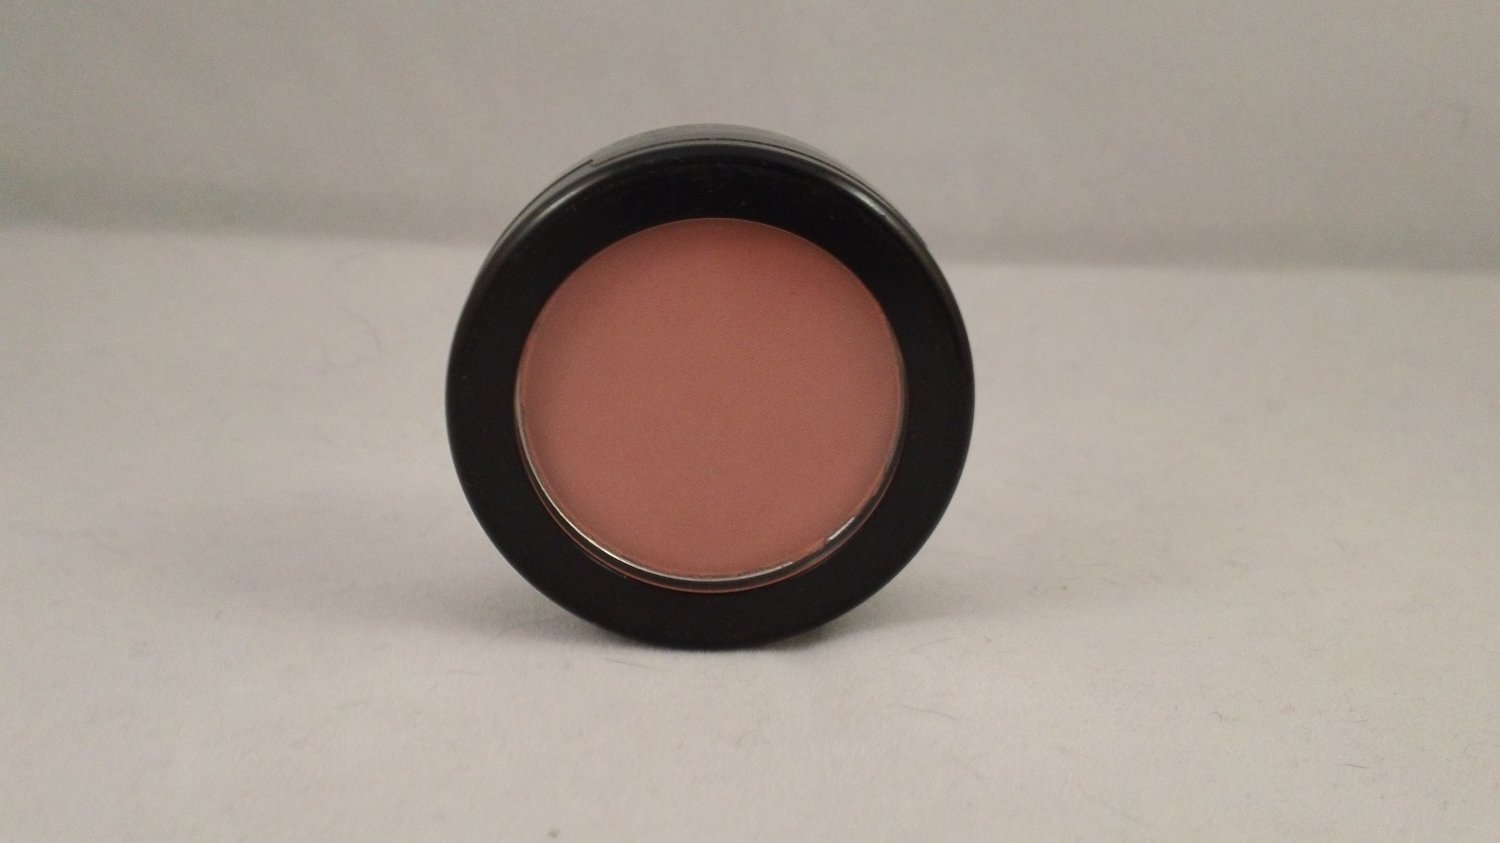 Maybelline Natural Accents Blush Mulberry Mist